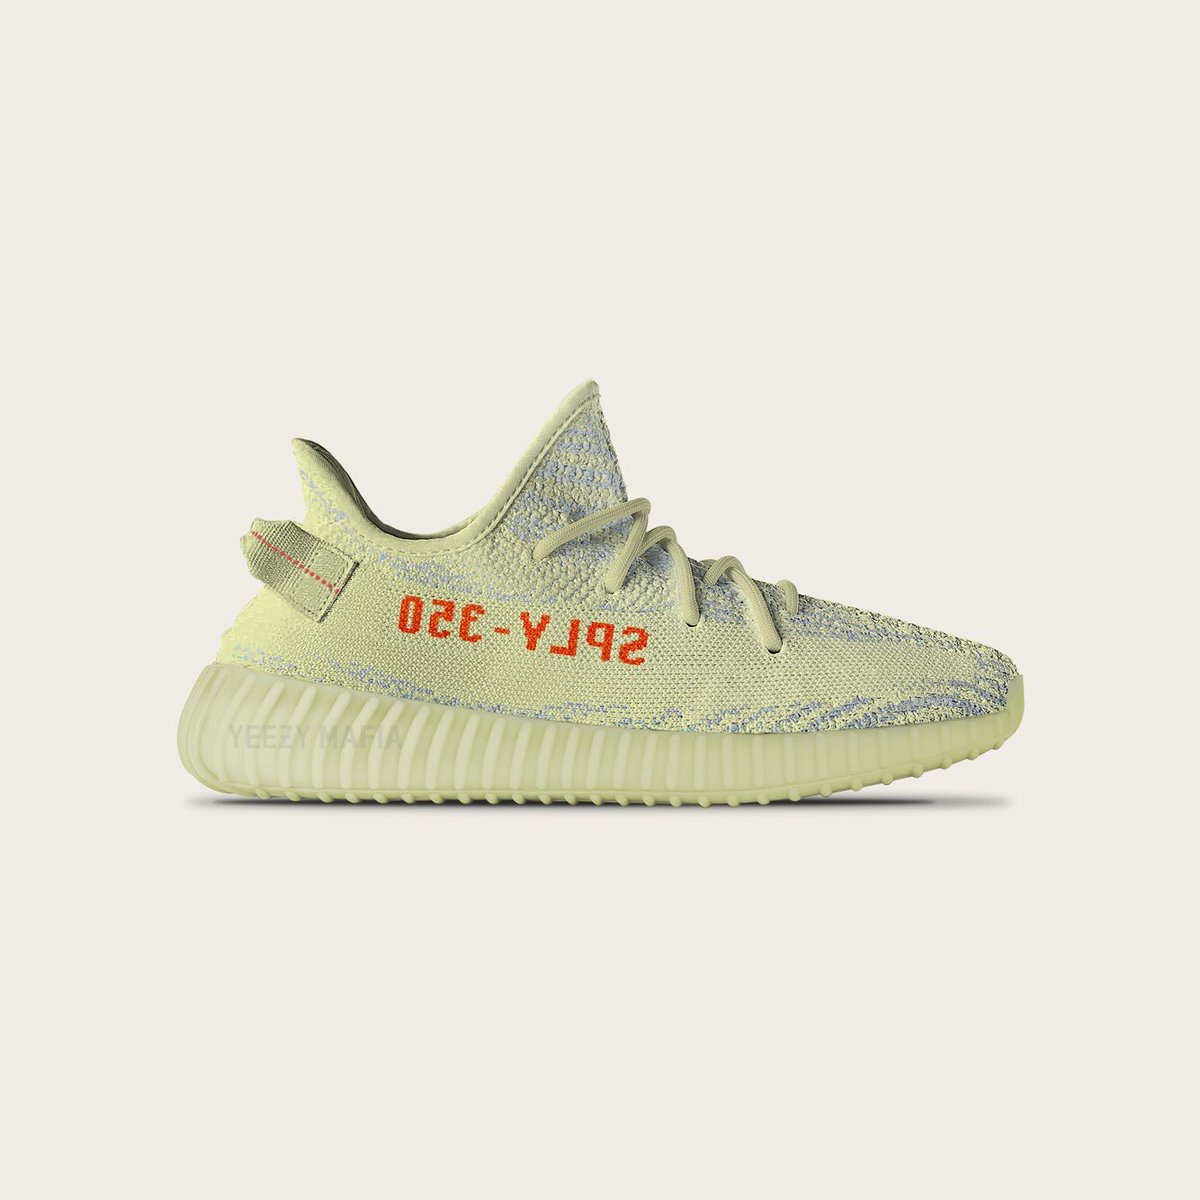 yeezy-boost-350-v2-semi-frozen-yellow-release-201712